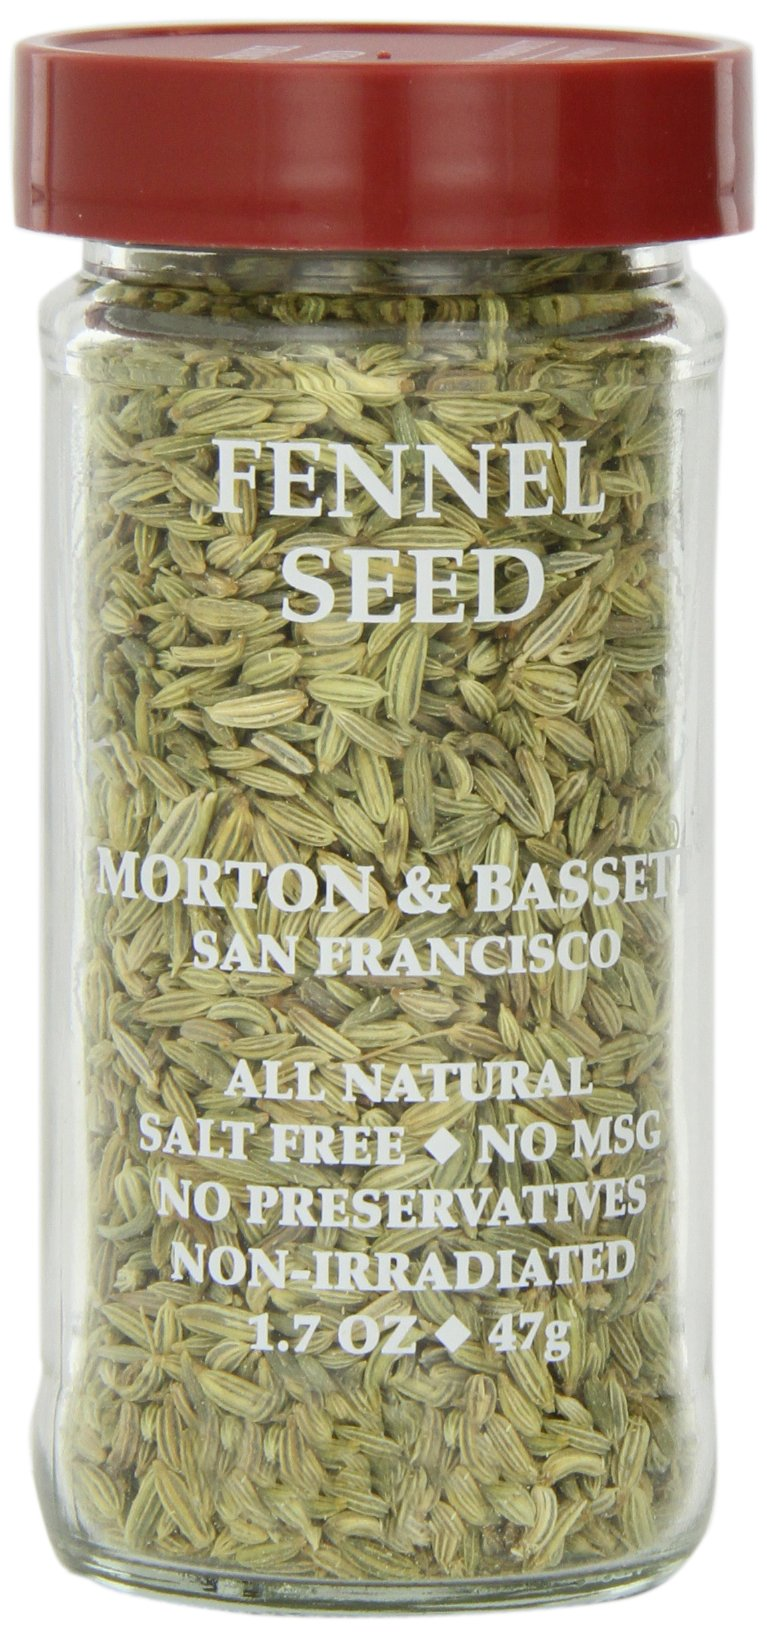 Morton & Basset Spices, Fennel Seed, 1.7 Ounce (Pack of 3)